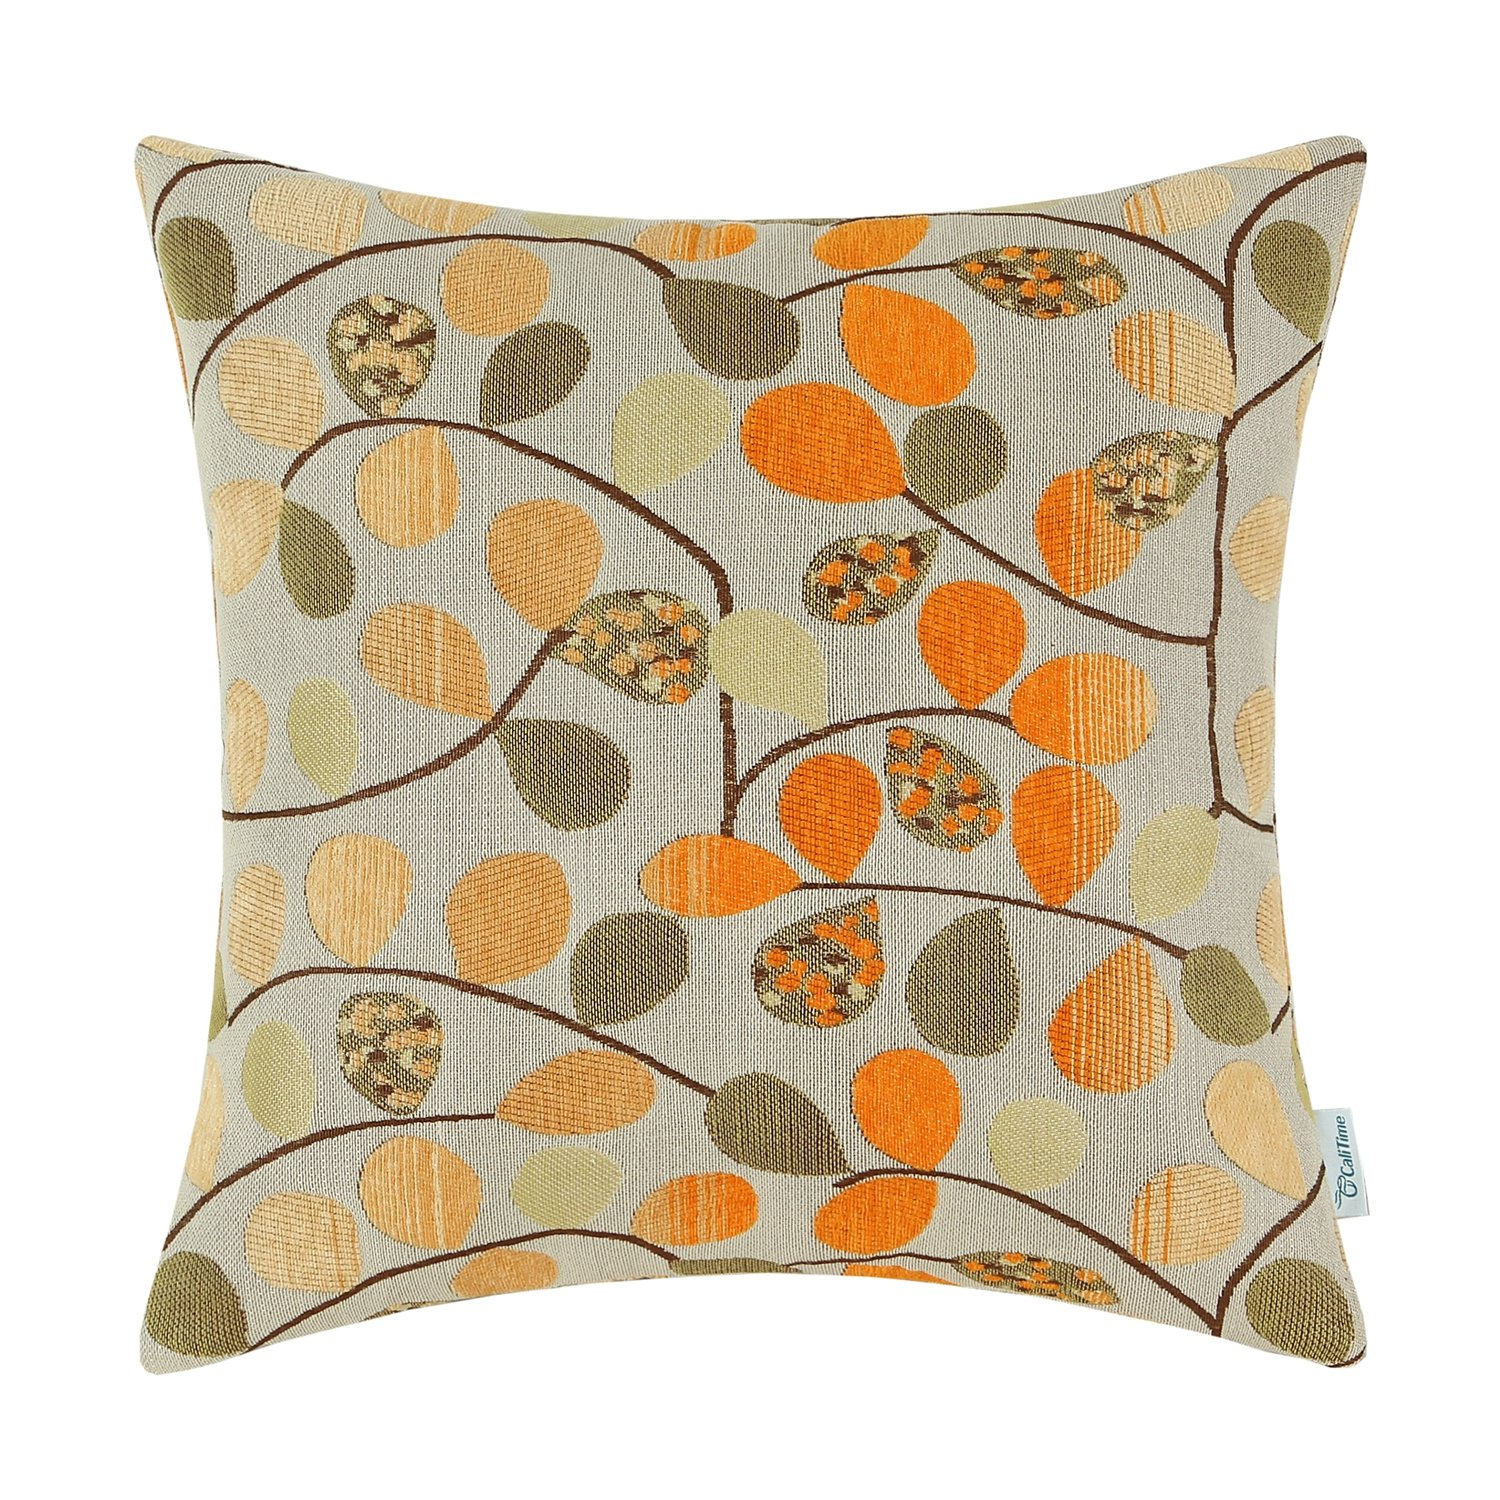 CaliTime Cushion Cover Throw Pillow Case Shell Couch Sofa Home Decoration Luxury Chenille Cute Leaves Both Sides 18 X 18 Inches Ecru Brown Qingdao PT Trading Co. Ltd. DSC0317E